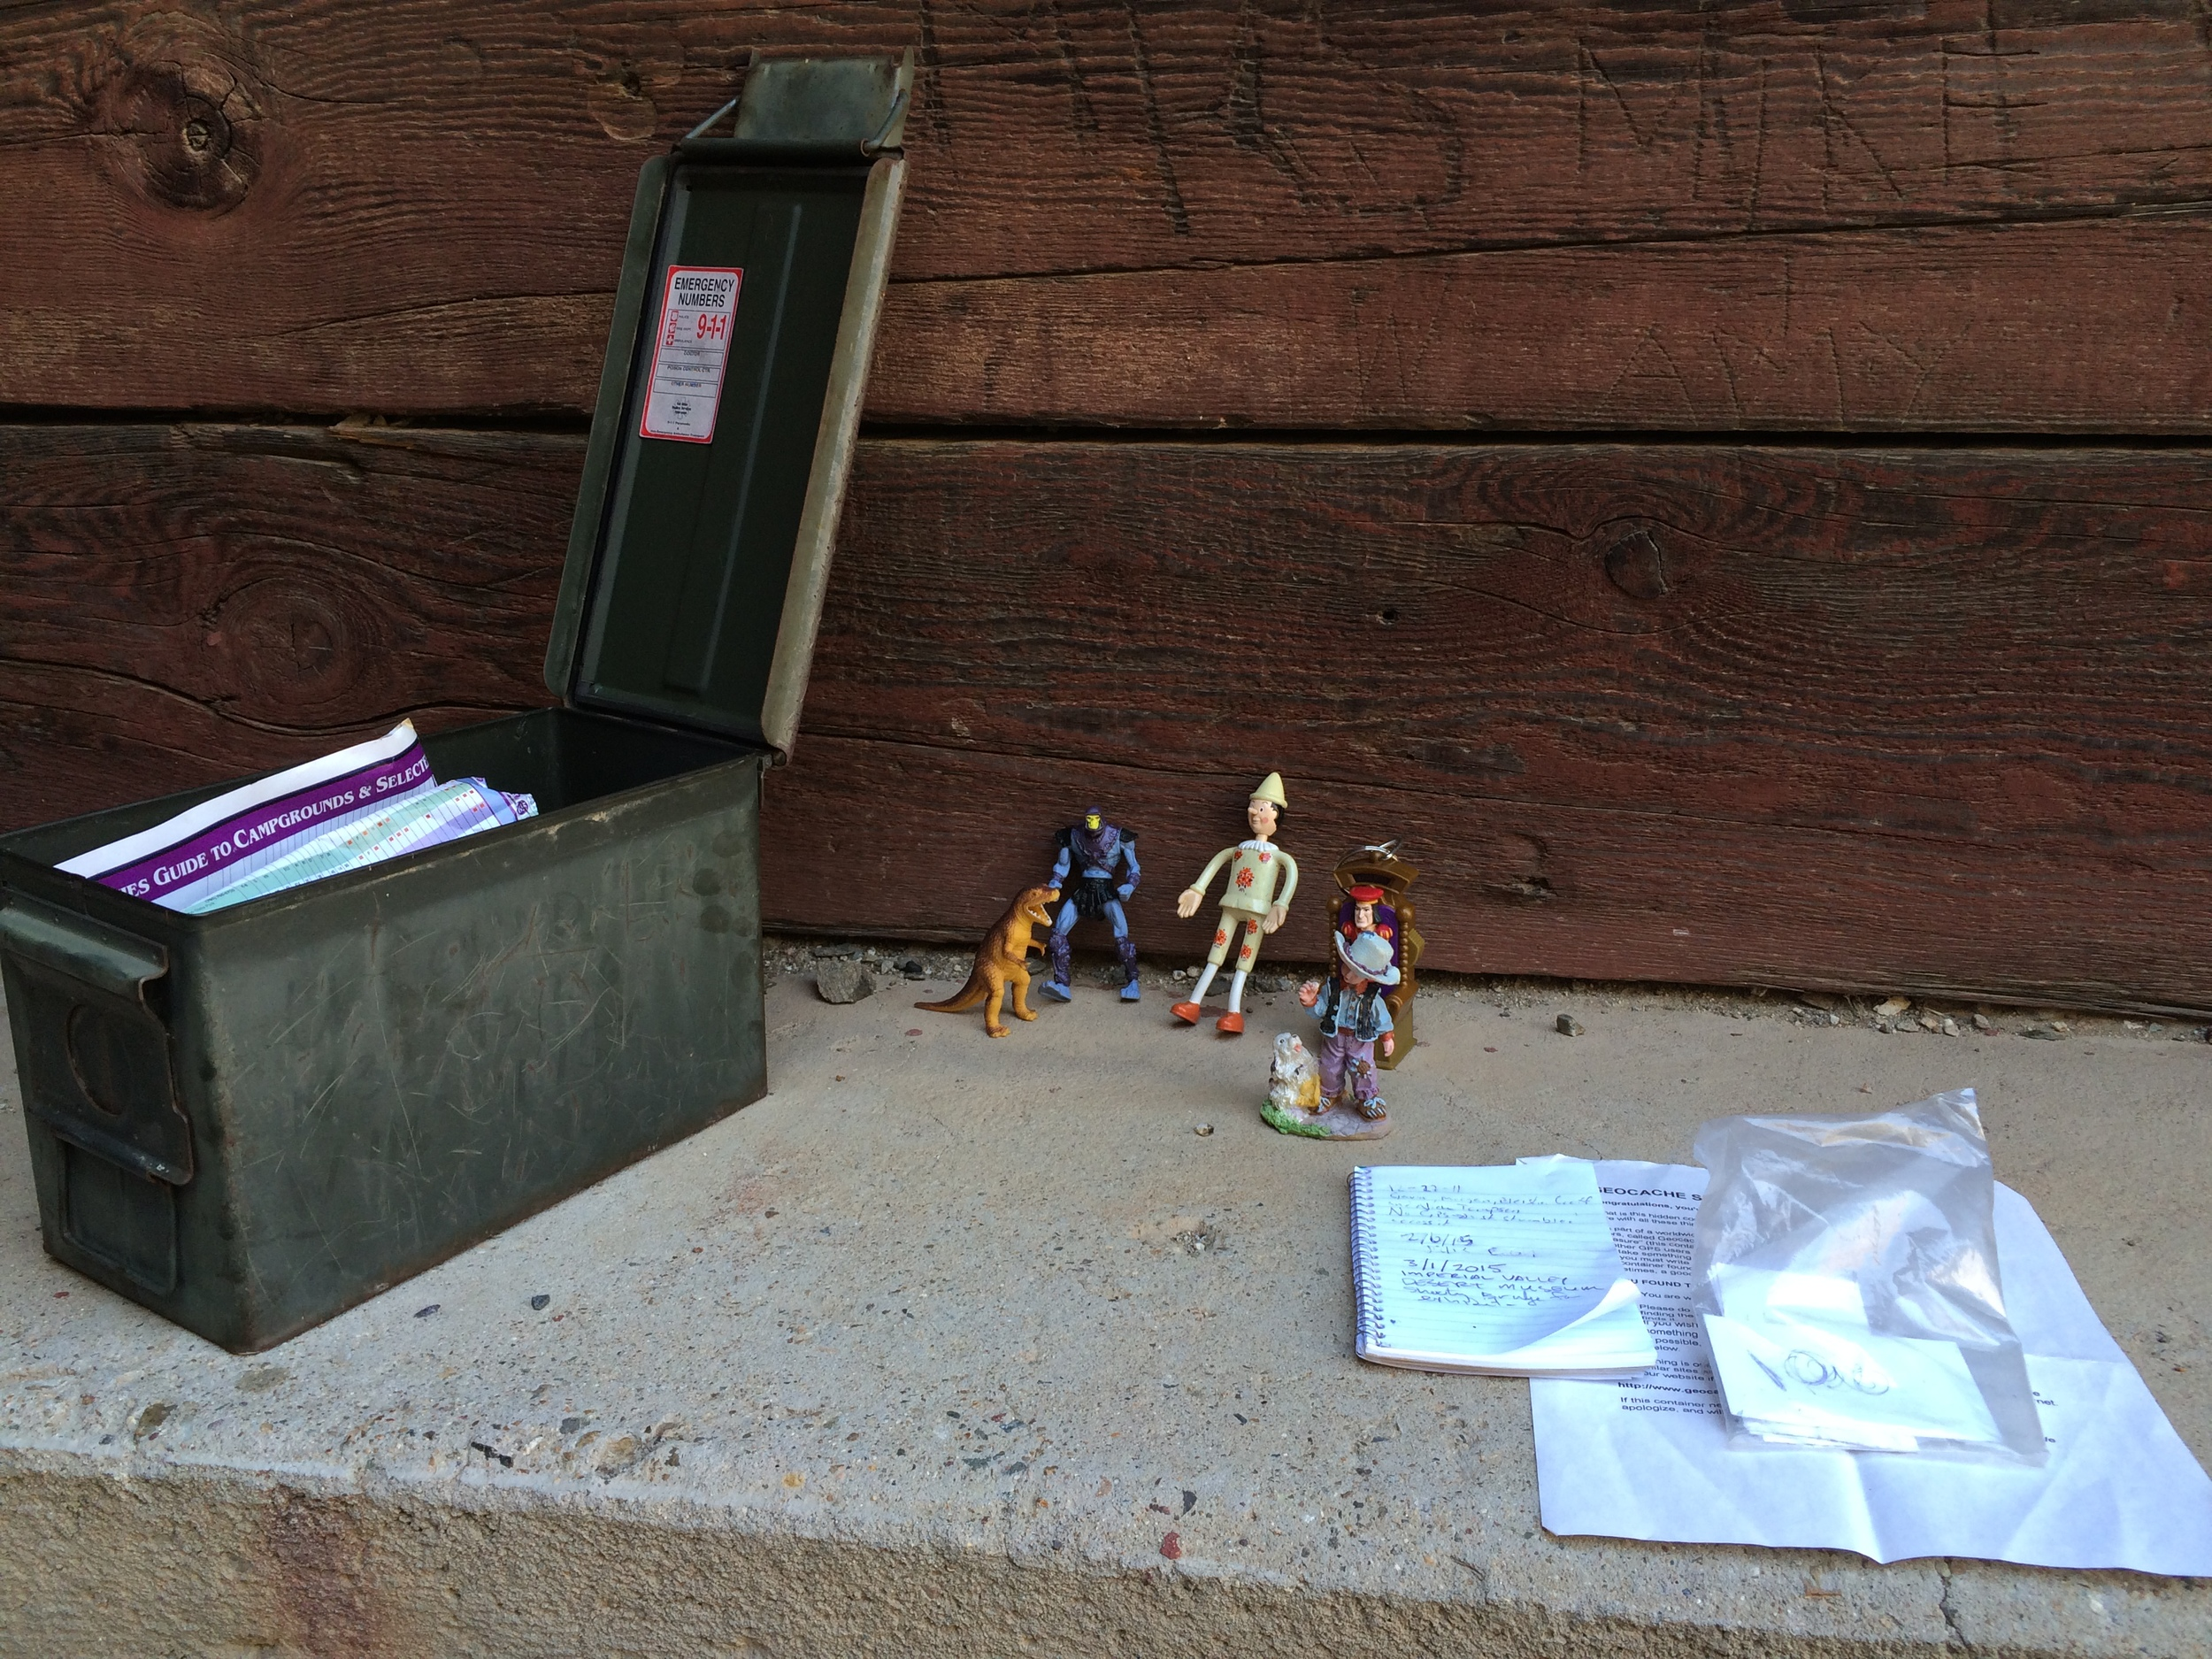 Geocache located on the Southern side of the Trestle tunnels.